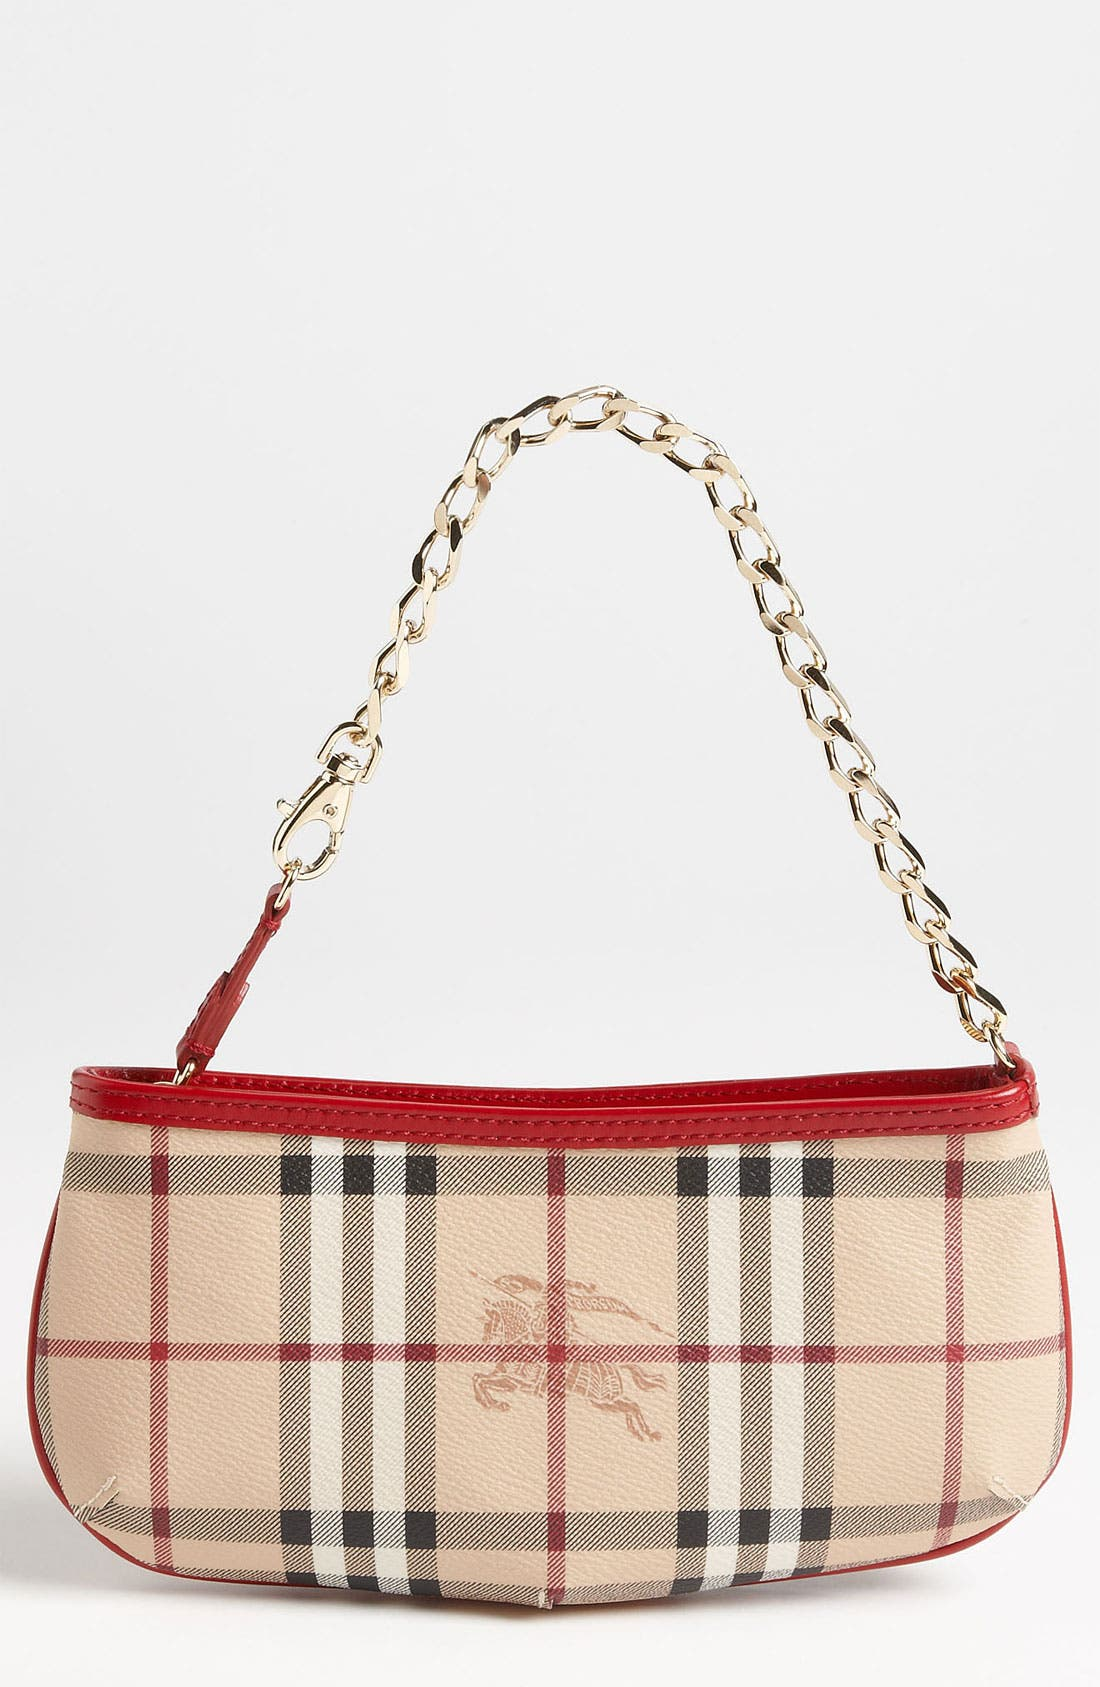 Alternate Image 1 Selected - Burberry 'Haymarket Color' Pouch